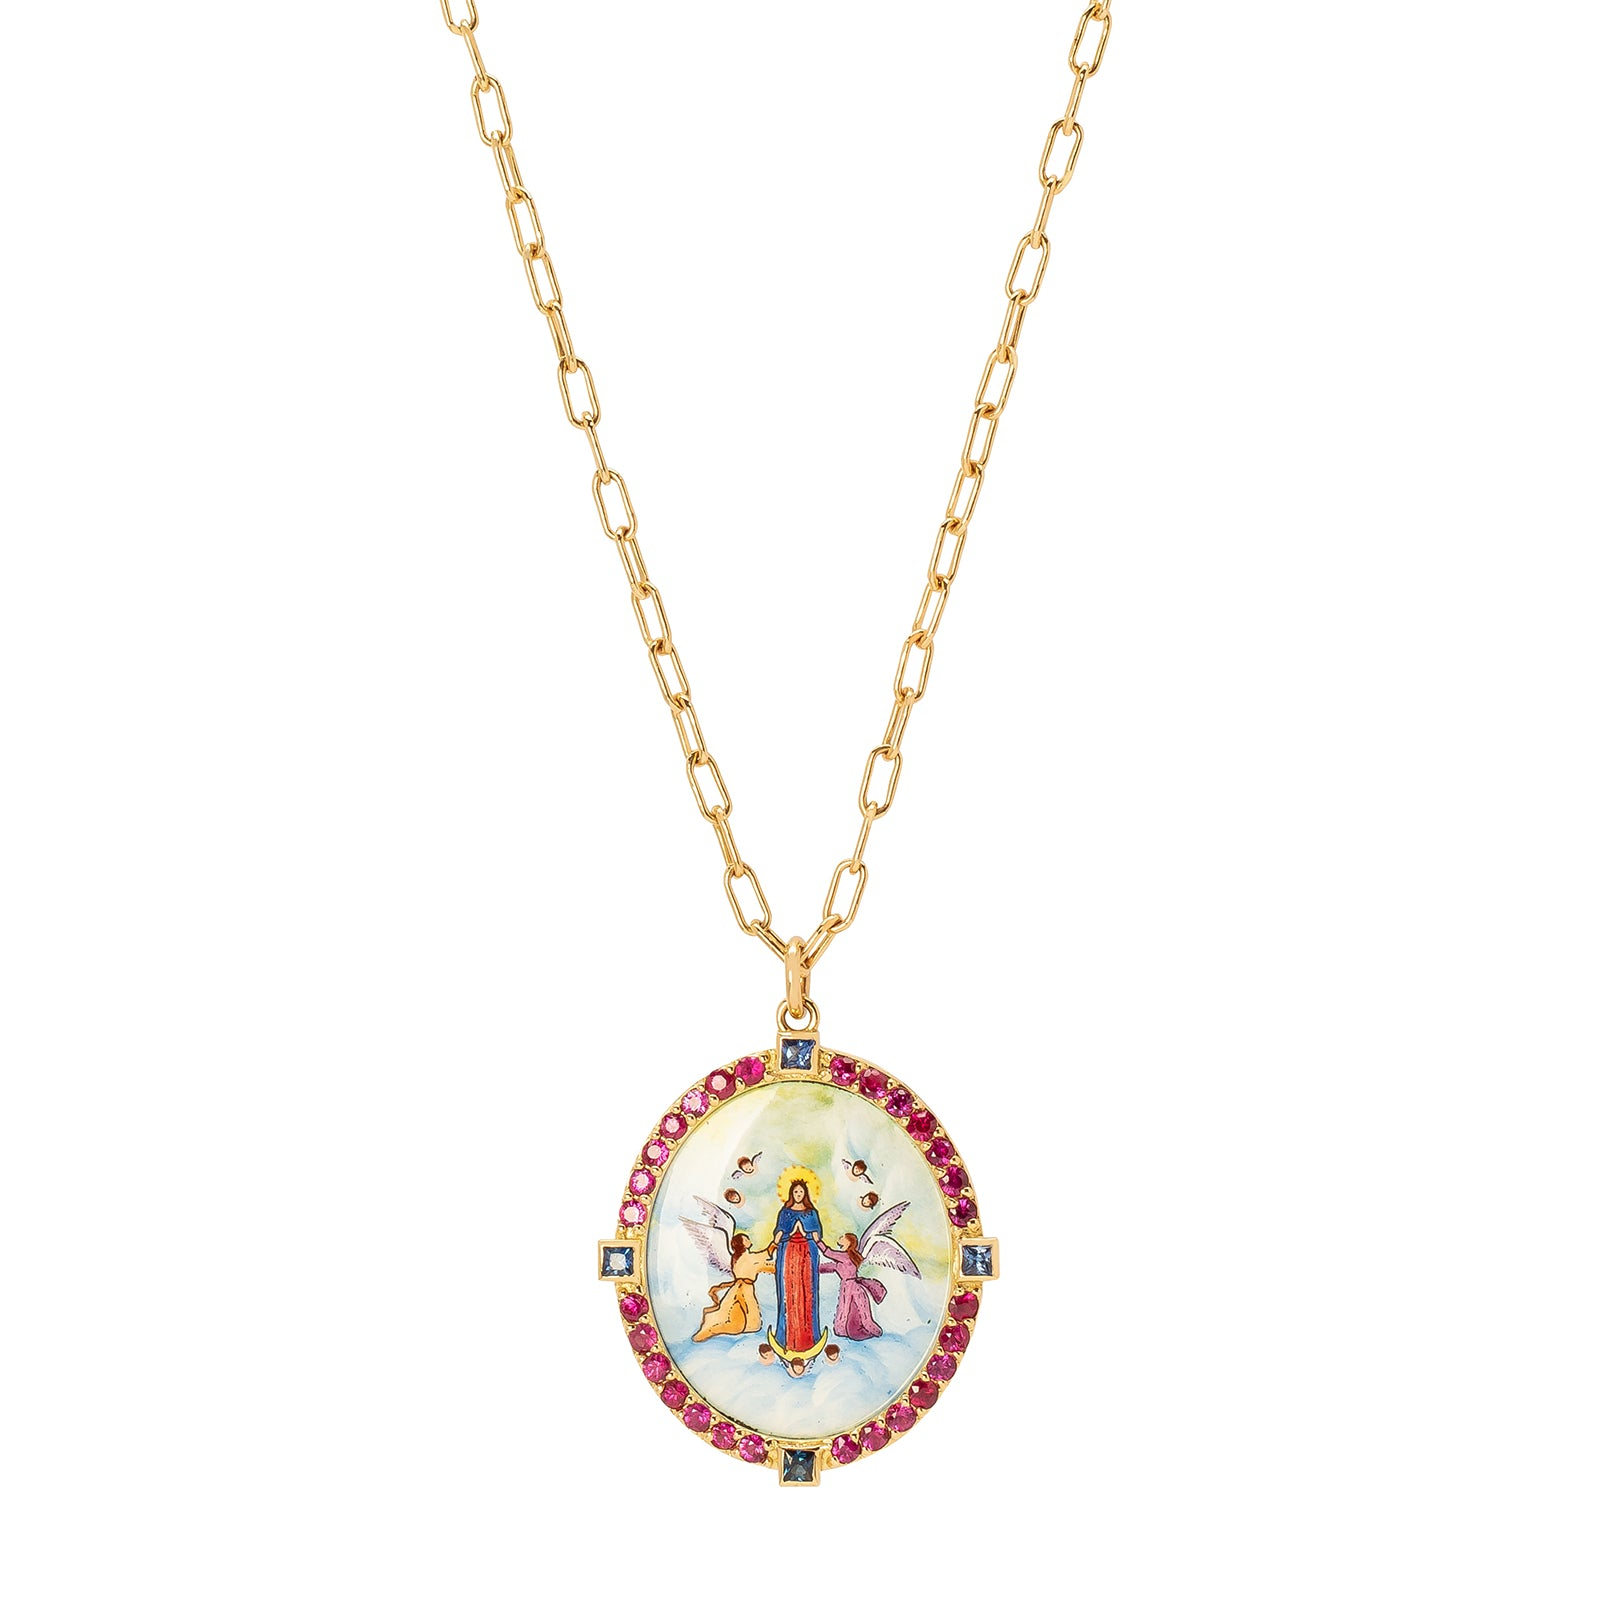 Colette Assumption of the Blessed Virgin Mary Pendant Necklace - Necklaces - Broken English Jewelry